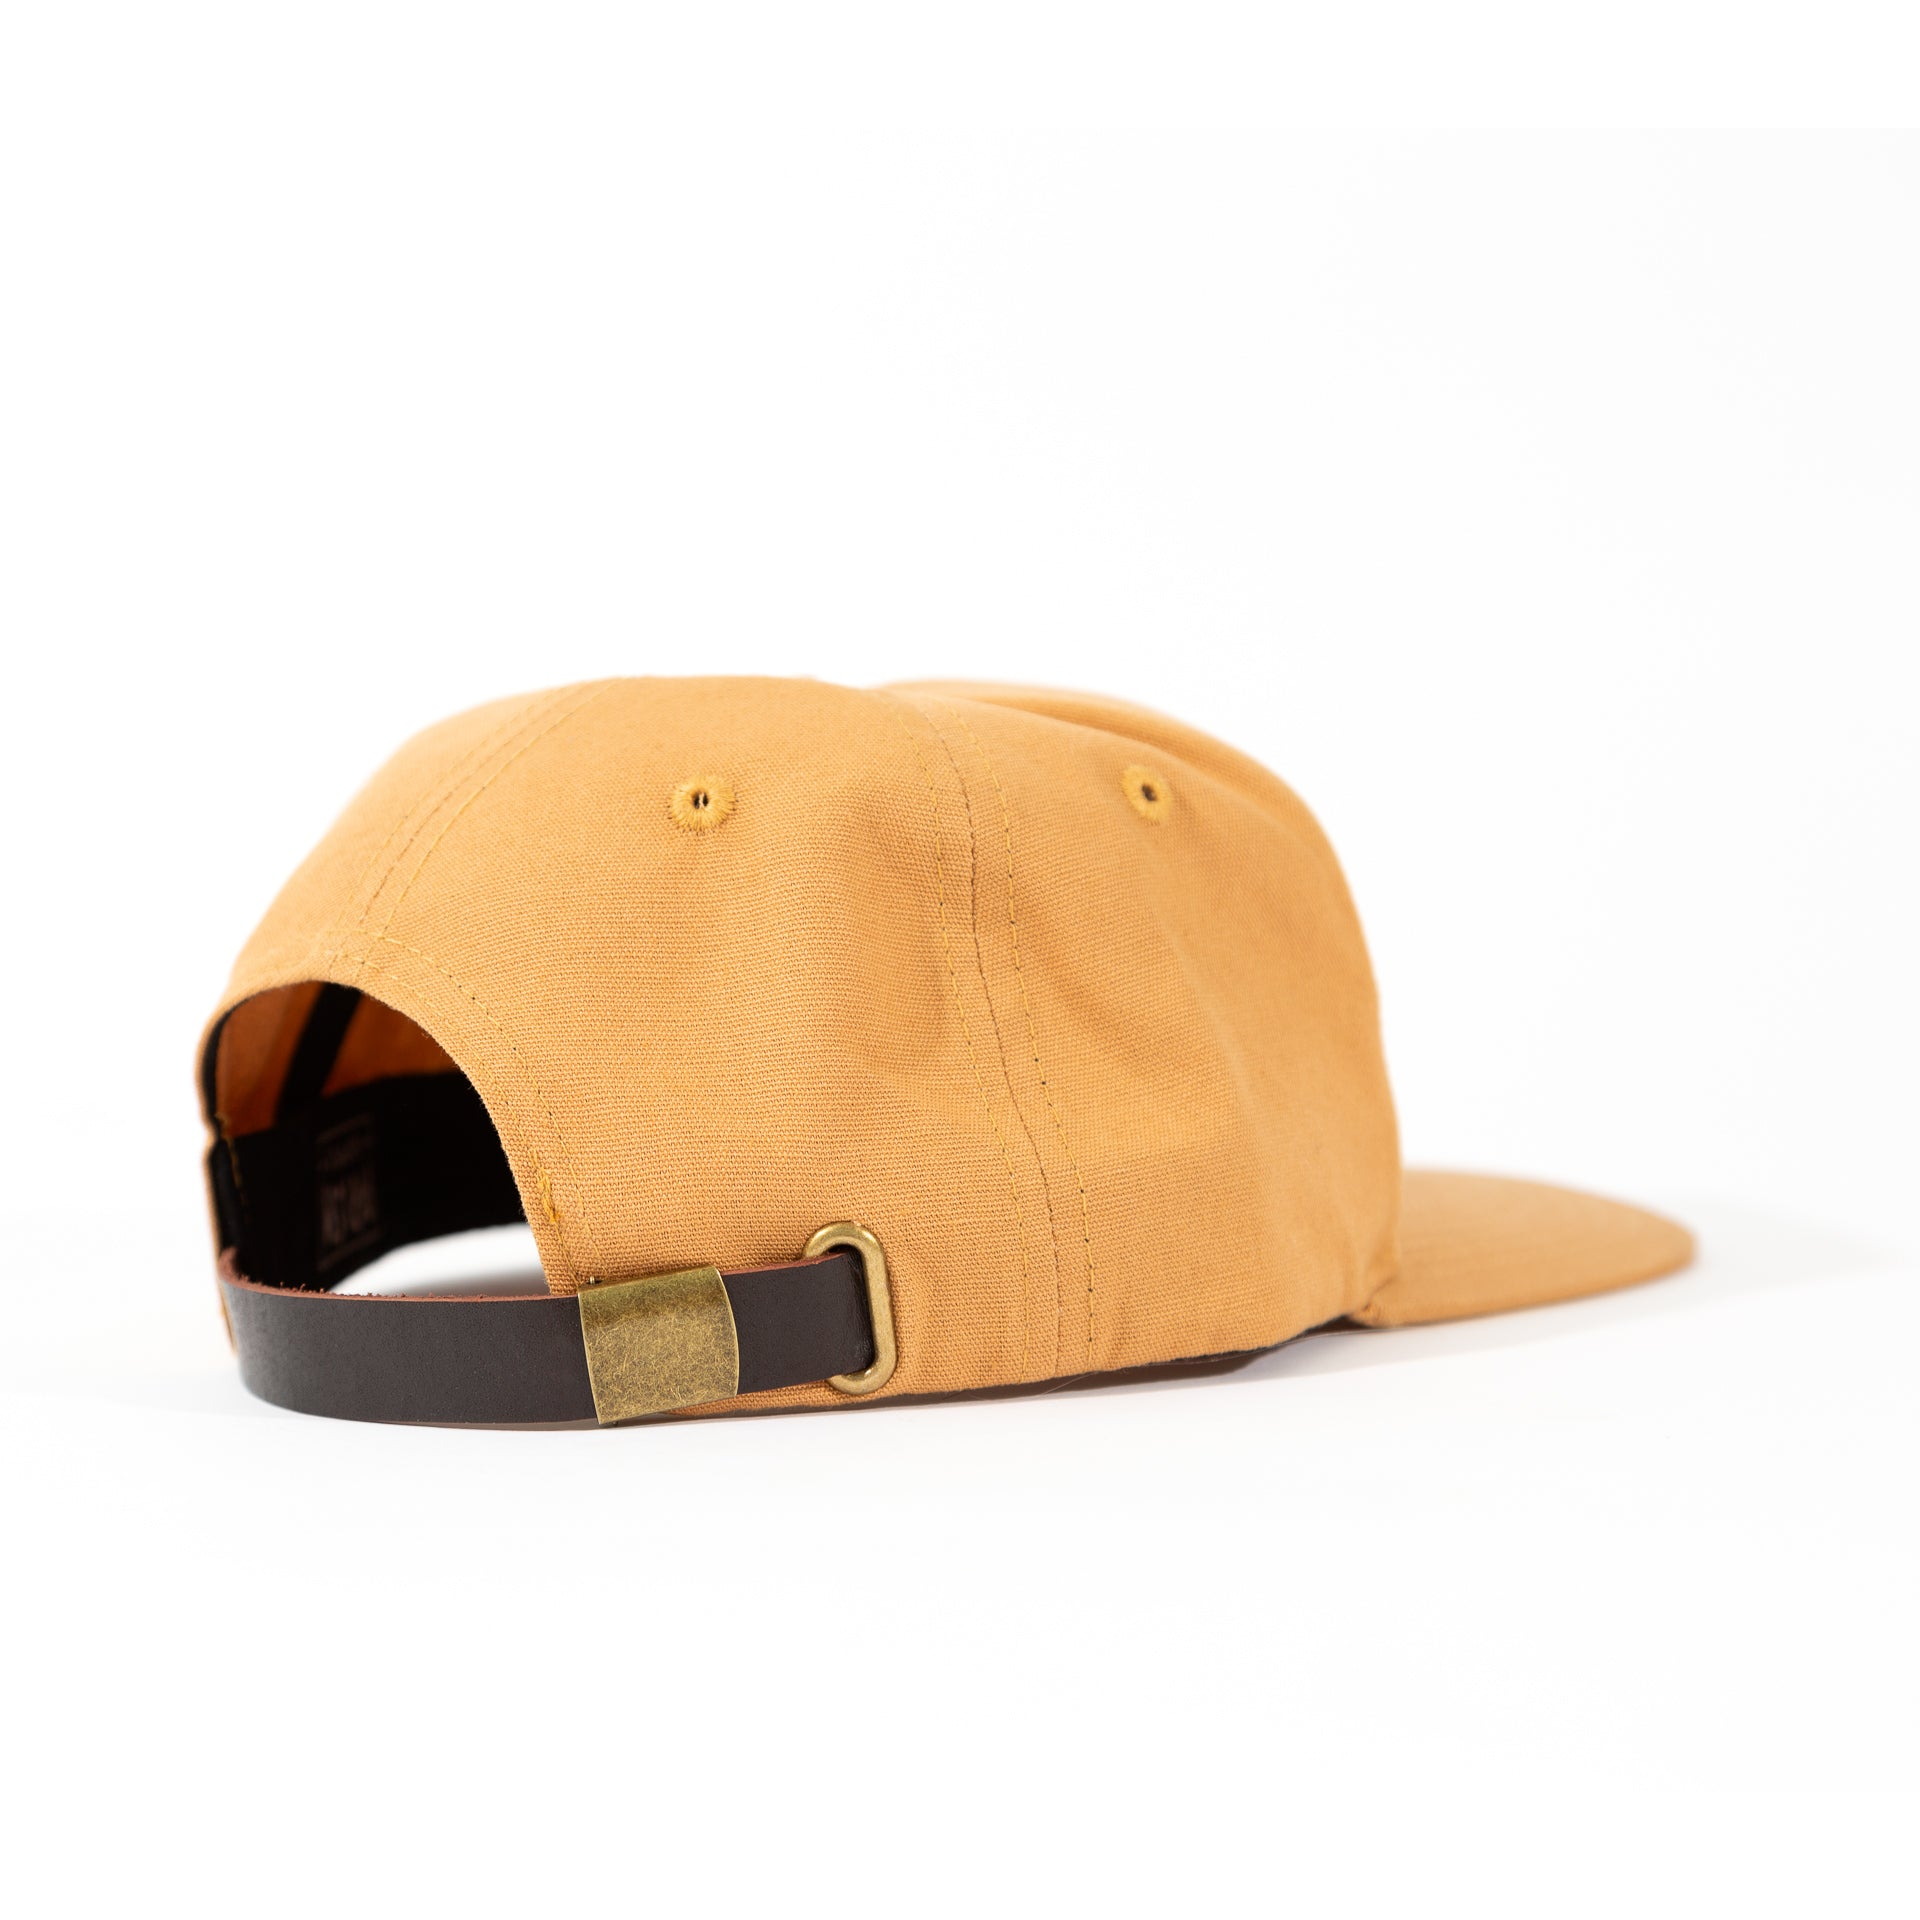 Tight Lines Hat - Tan - Apparel and Accessories - Prism Supply